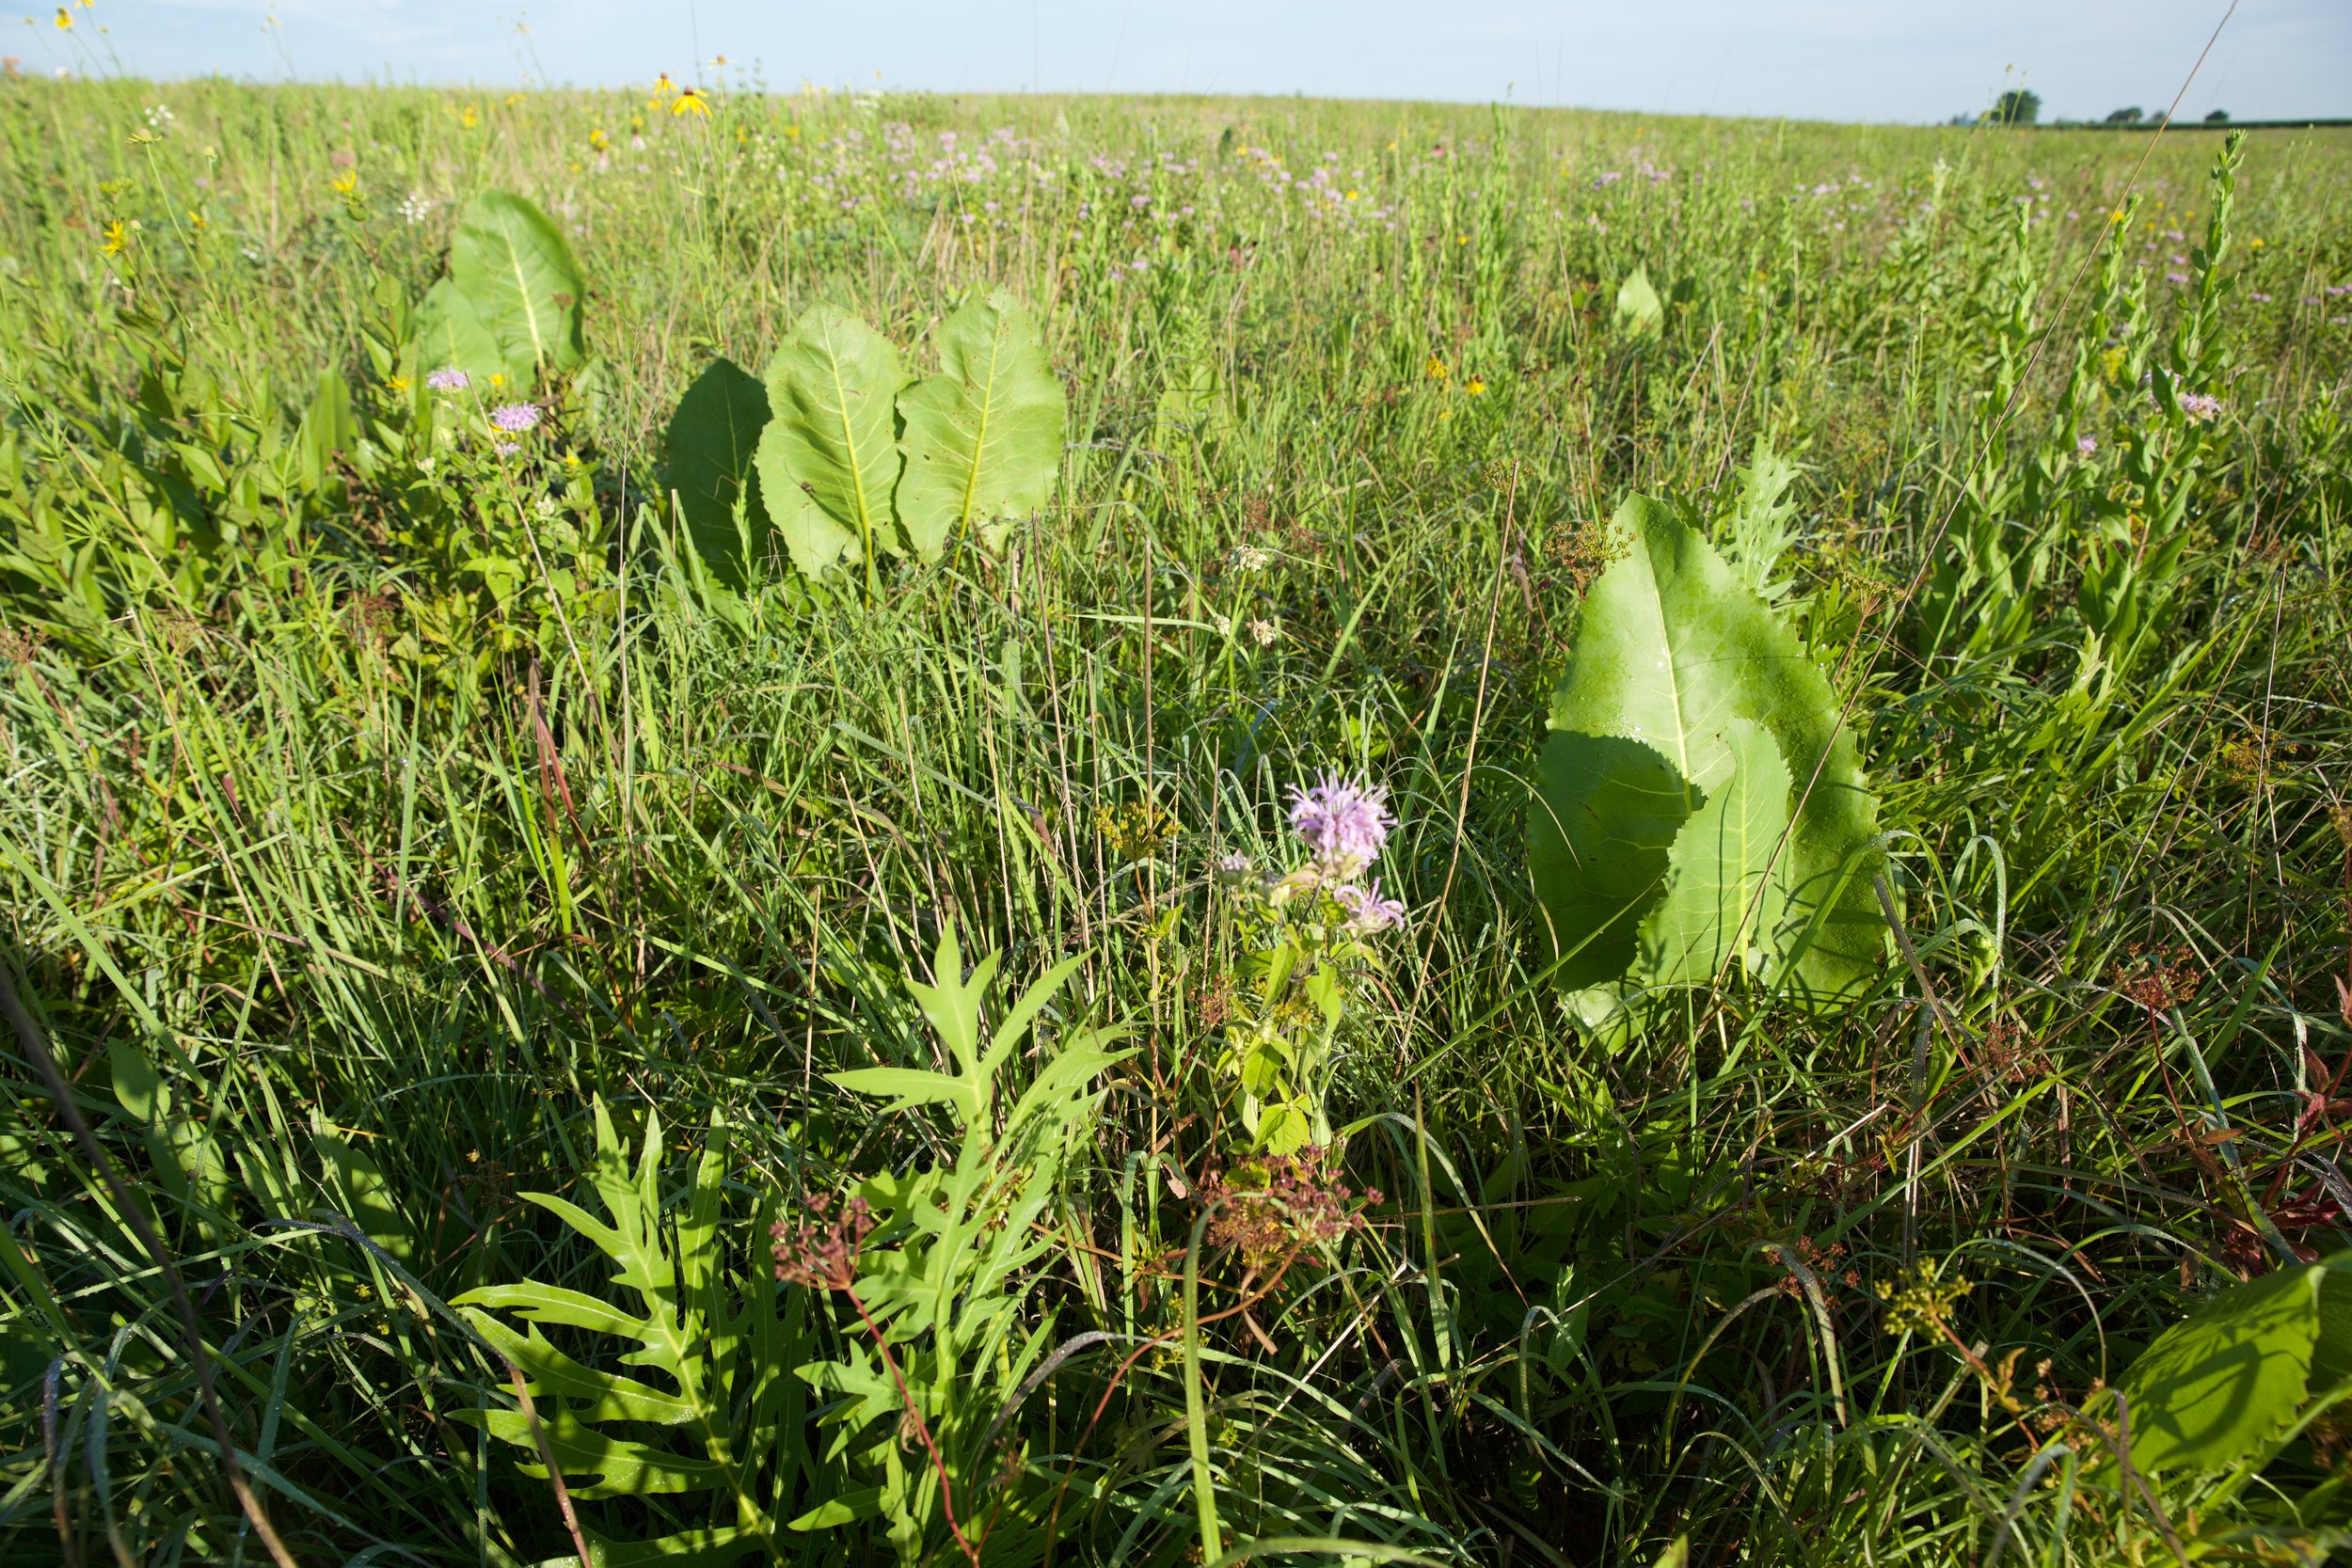 Goose Pond Sanctuary is home to hundreds of acres of restored grasslands, some of the few remaining in Wisconsin. Photo by Arlene Koziol